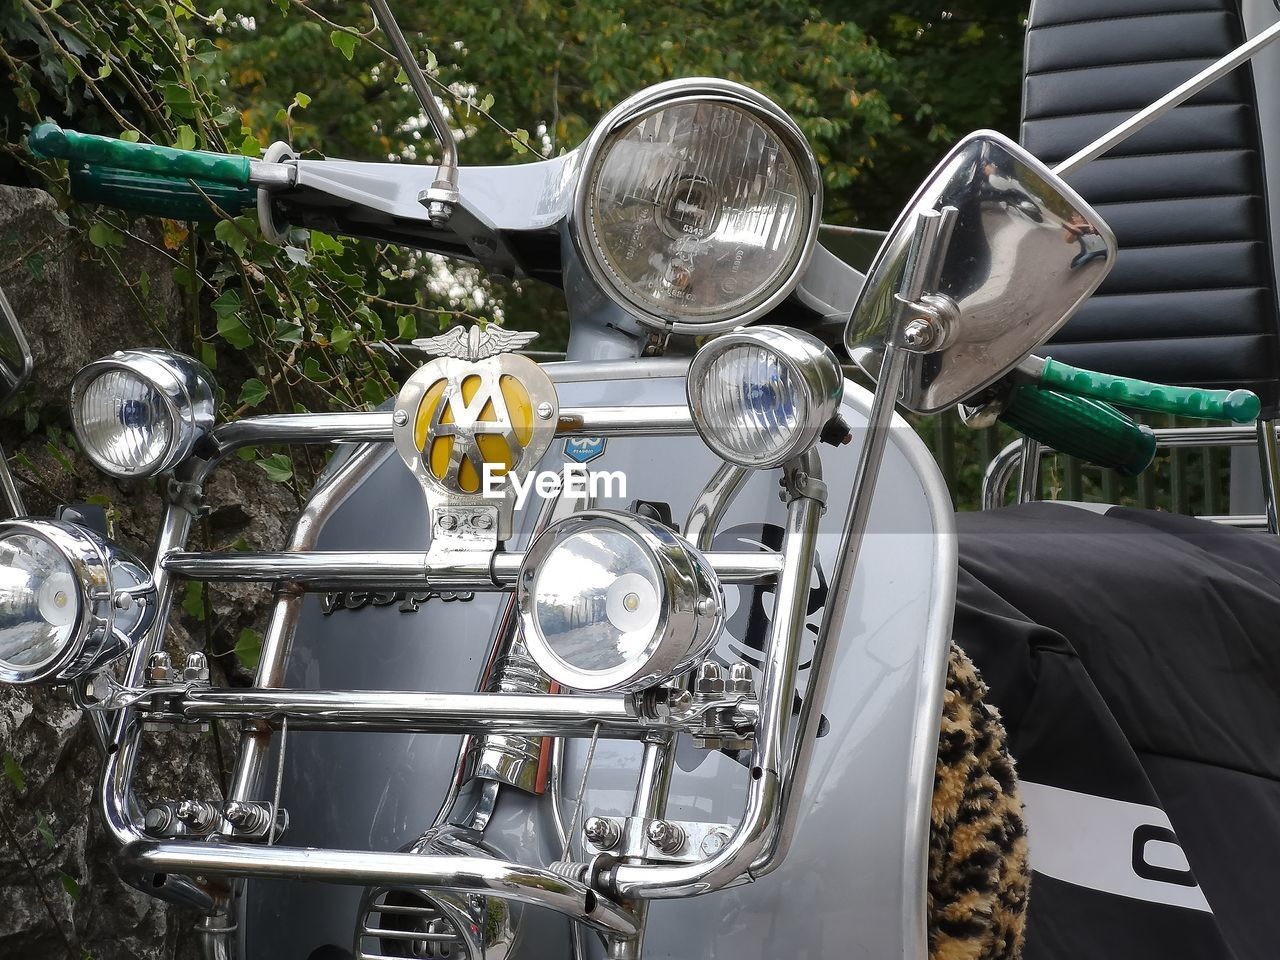 transportation, mode of transportation, land vehicle, headlight, stationary, metal, day, no people, motorcycle, close-up, outdoors, bicycle, retro styled, car, motor vehicle, shiny, focus on foreground, handlebar, parking, chrome, silver colored